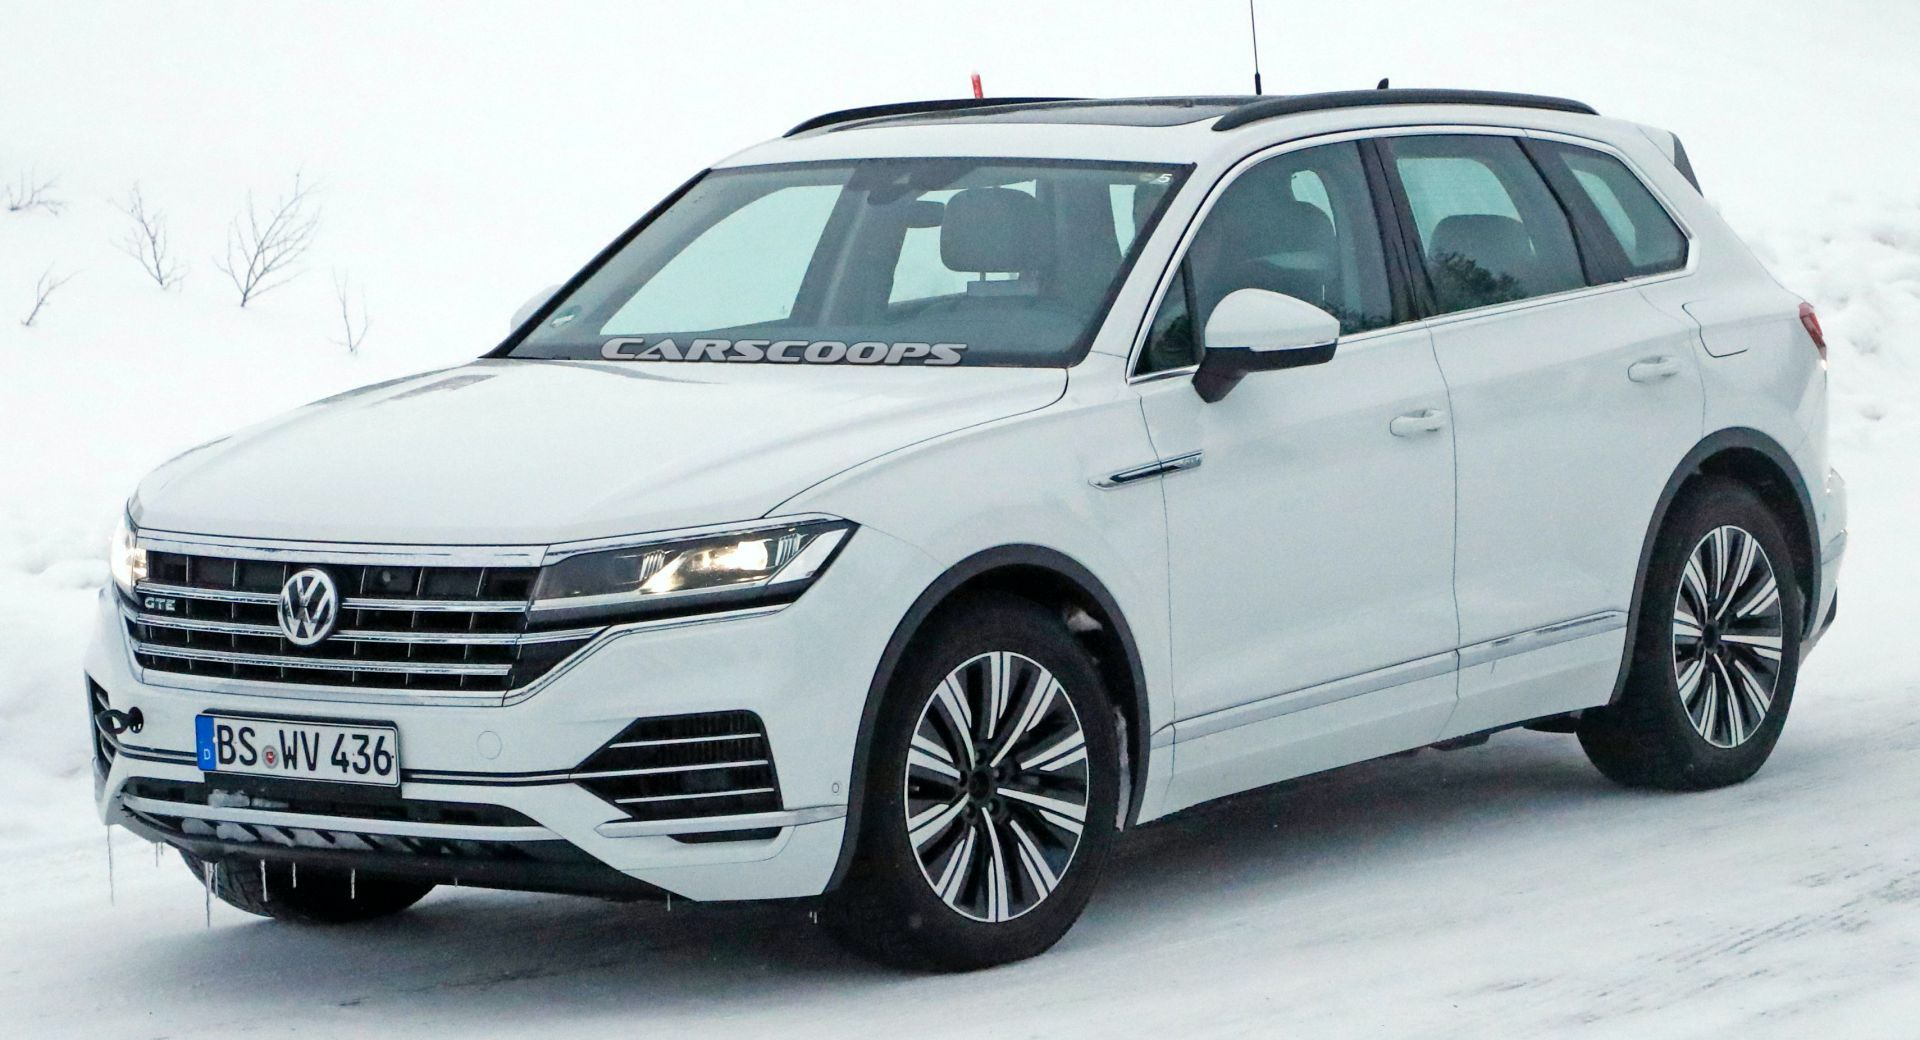 vw touareg gte phev coming as a more sensible alternative to touareg r carscoops vw touareg gte phev coming as a more